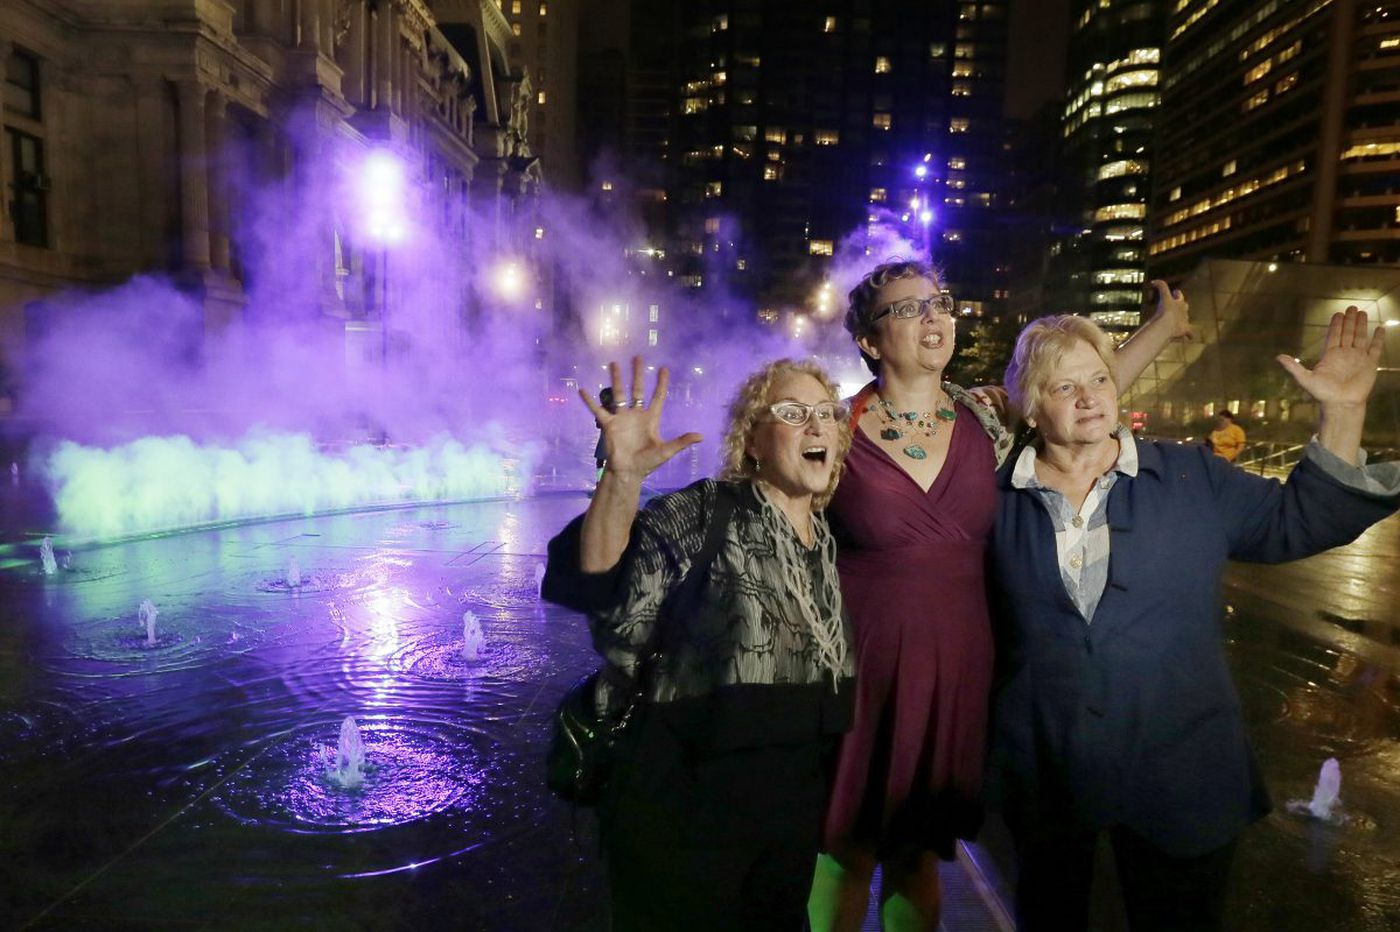 Dilworth Park's new public sculpture is made of mist and light | Inga Saffron